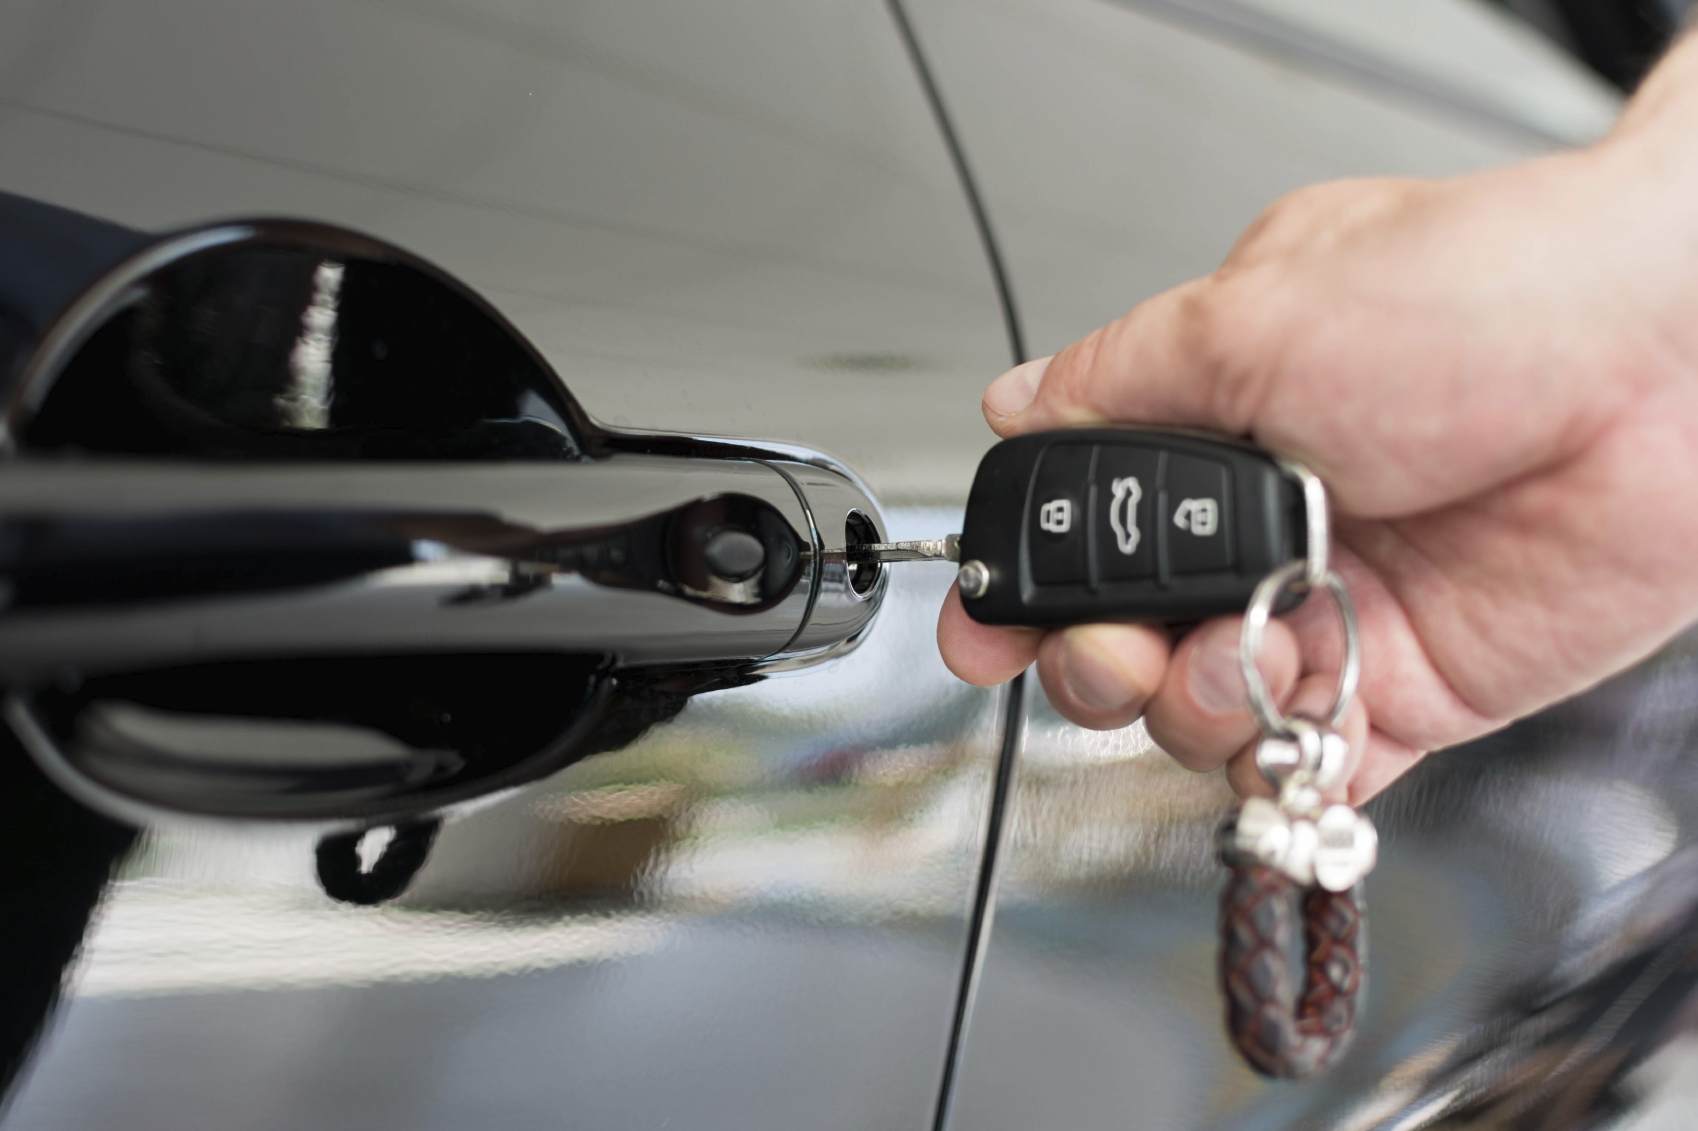 Get the Keys to Your New Ride!